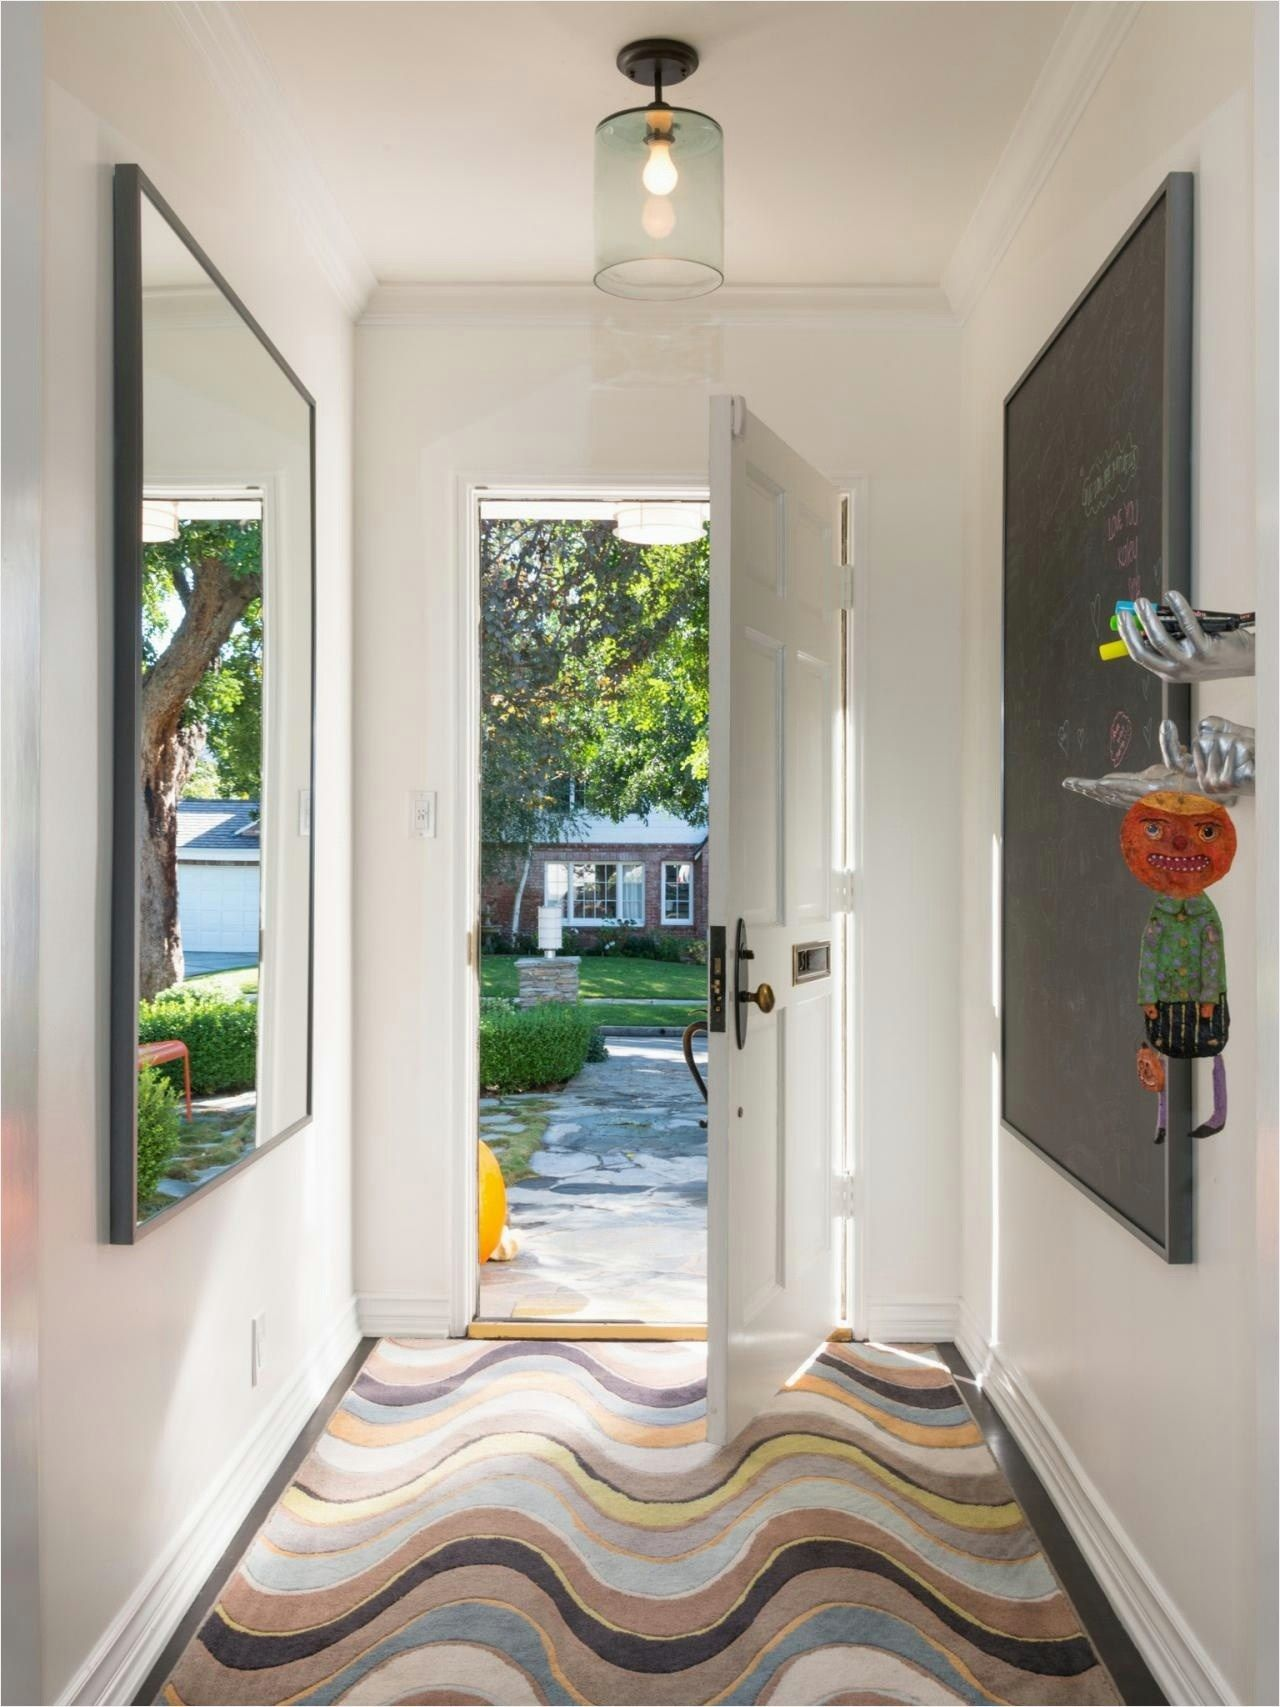 41 Amazing Modern Entryway Decorating Ideas 16 Decorating Artistic Entryway